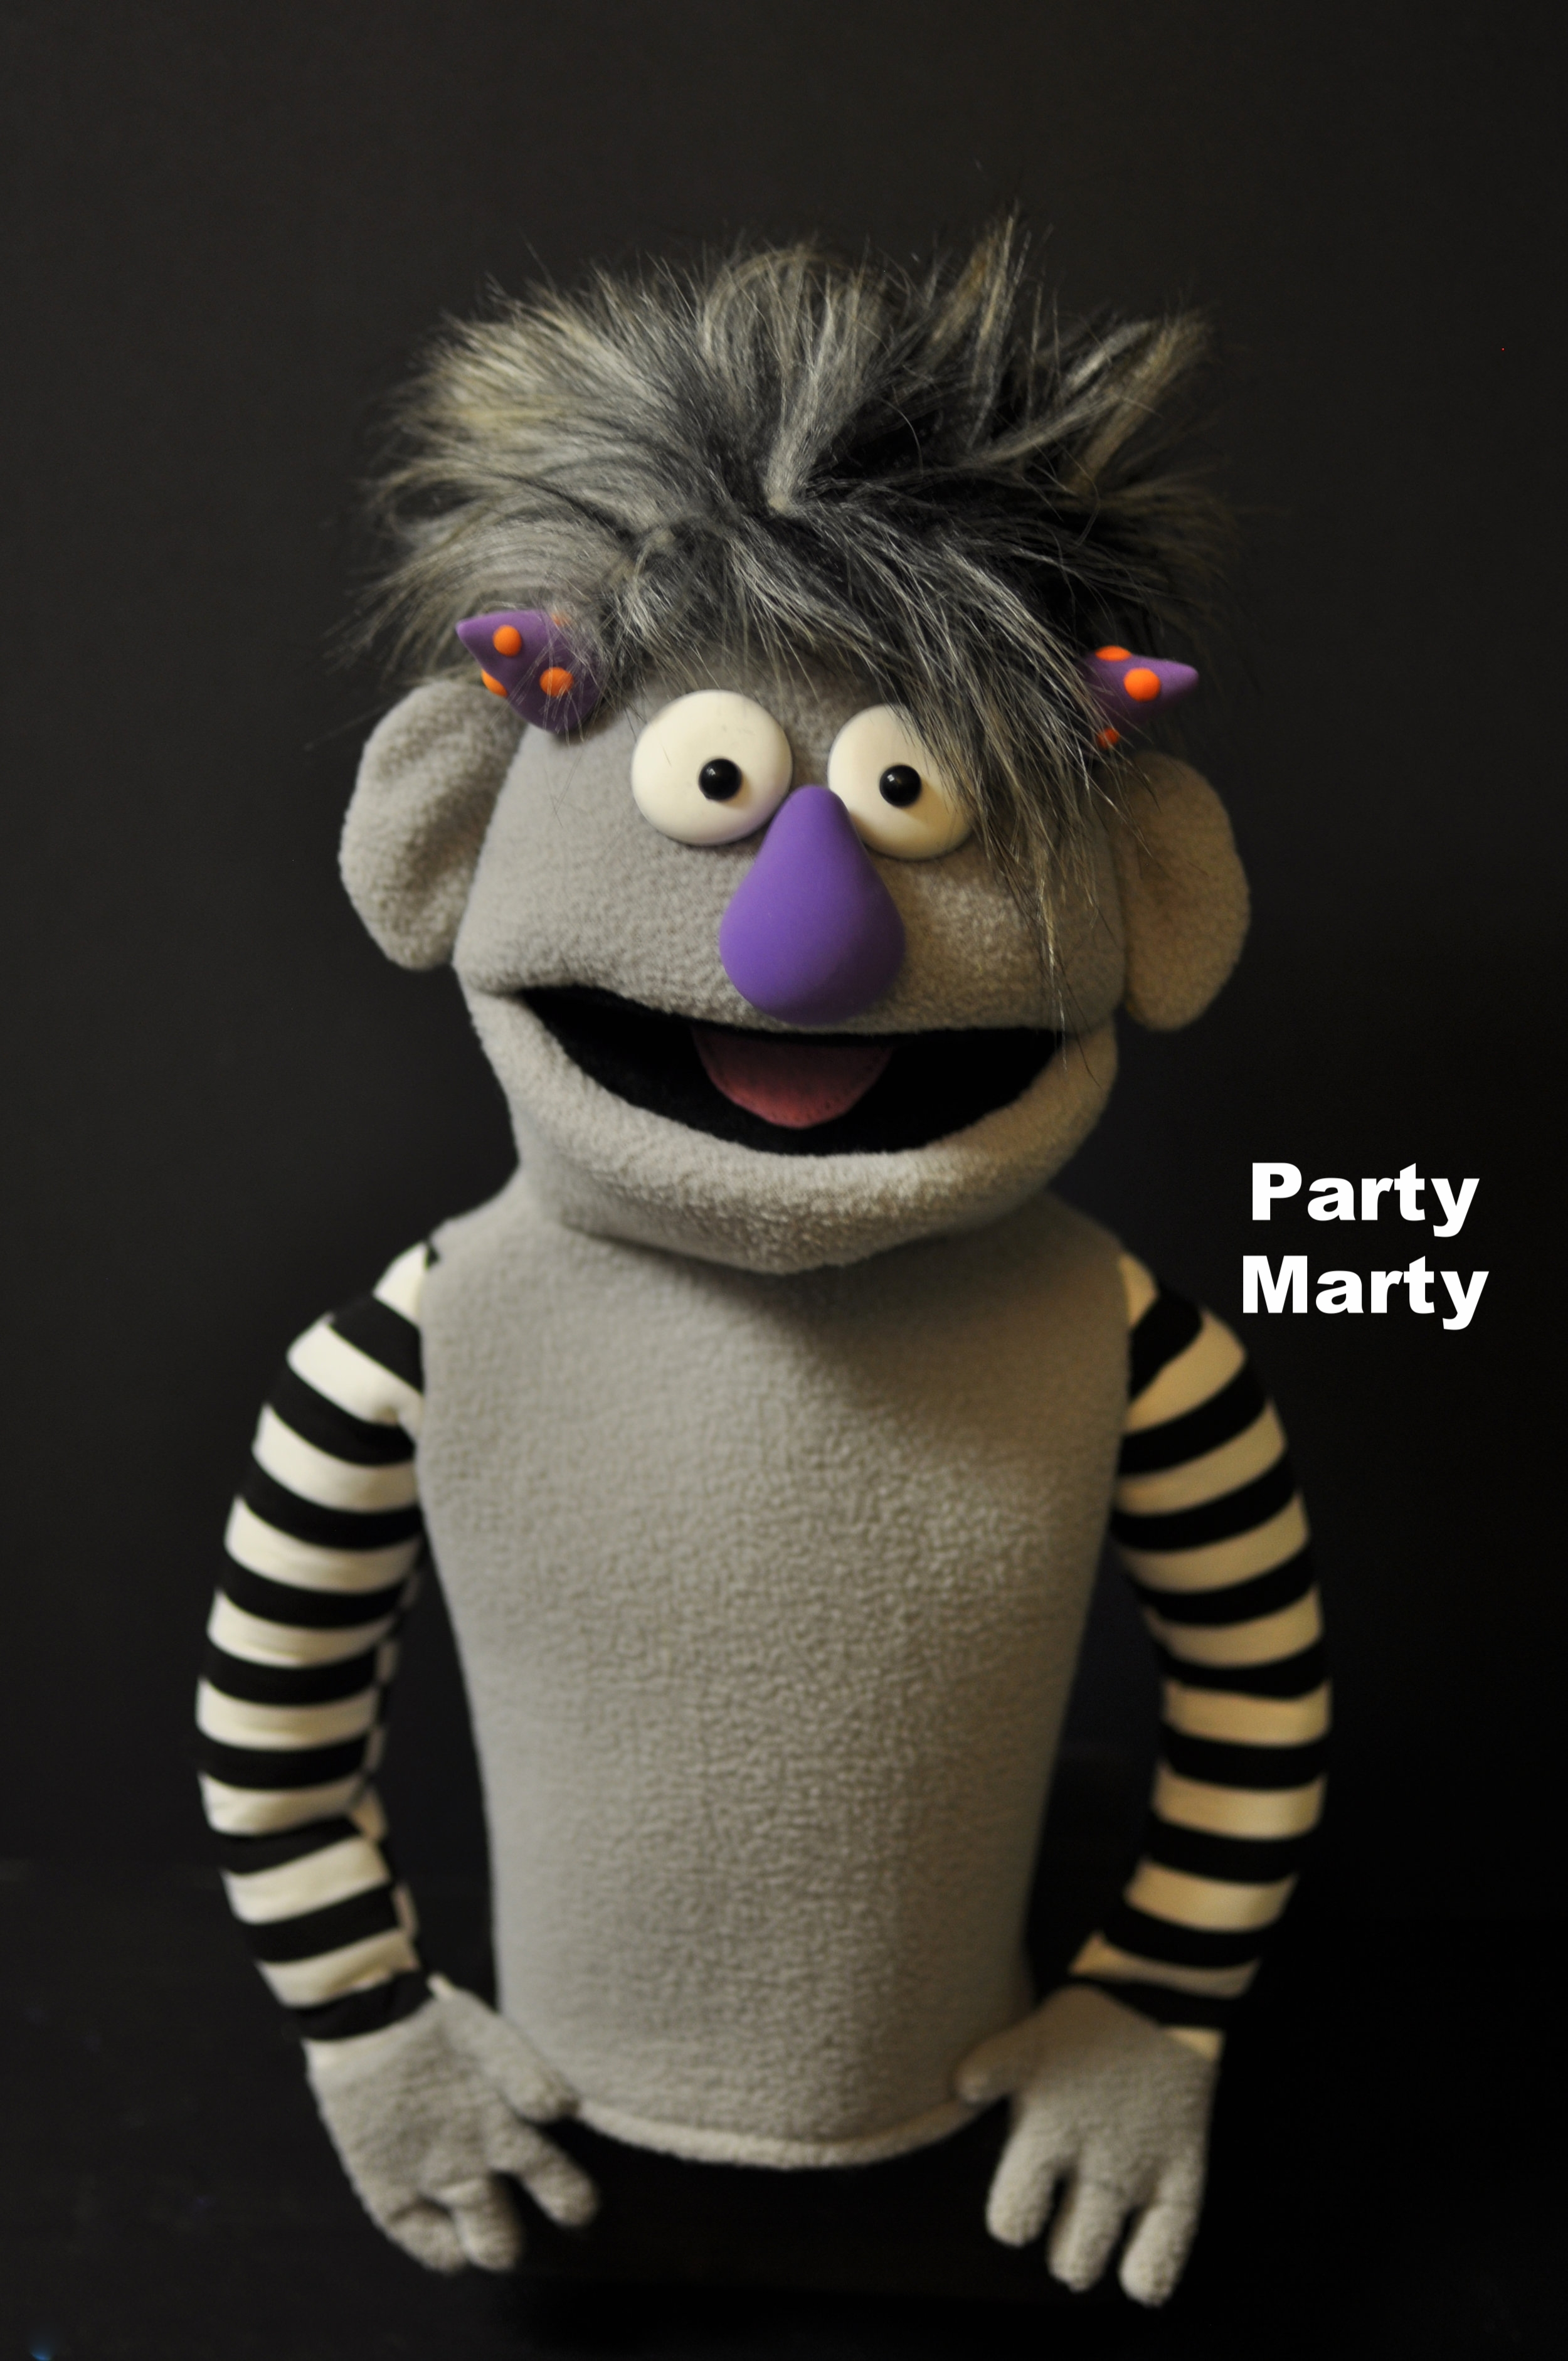 Party-Marty.jpg